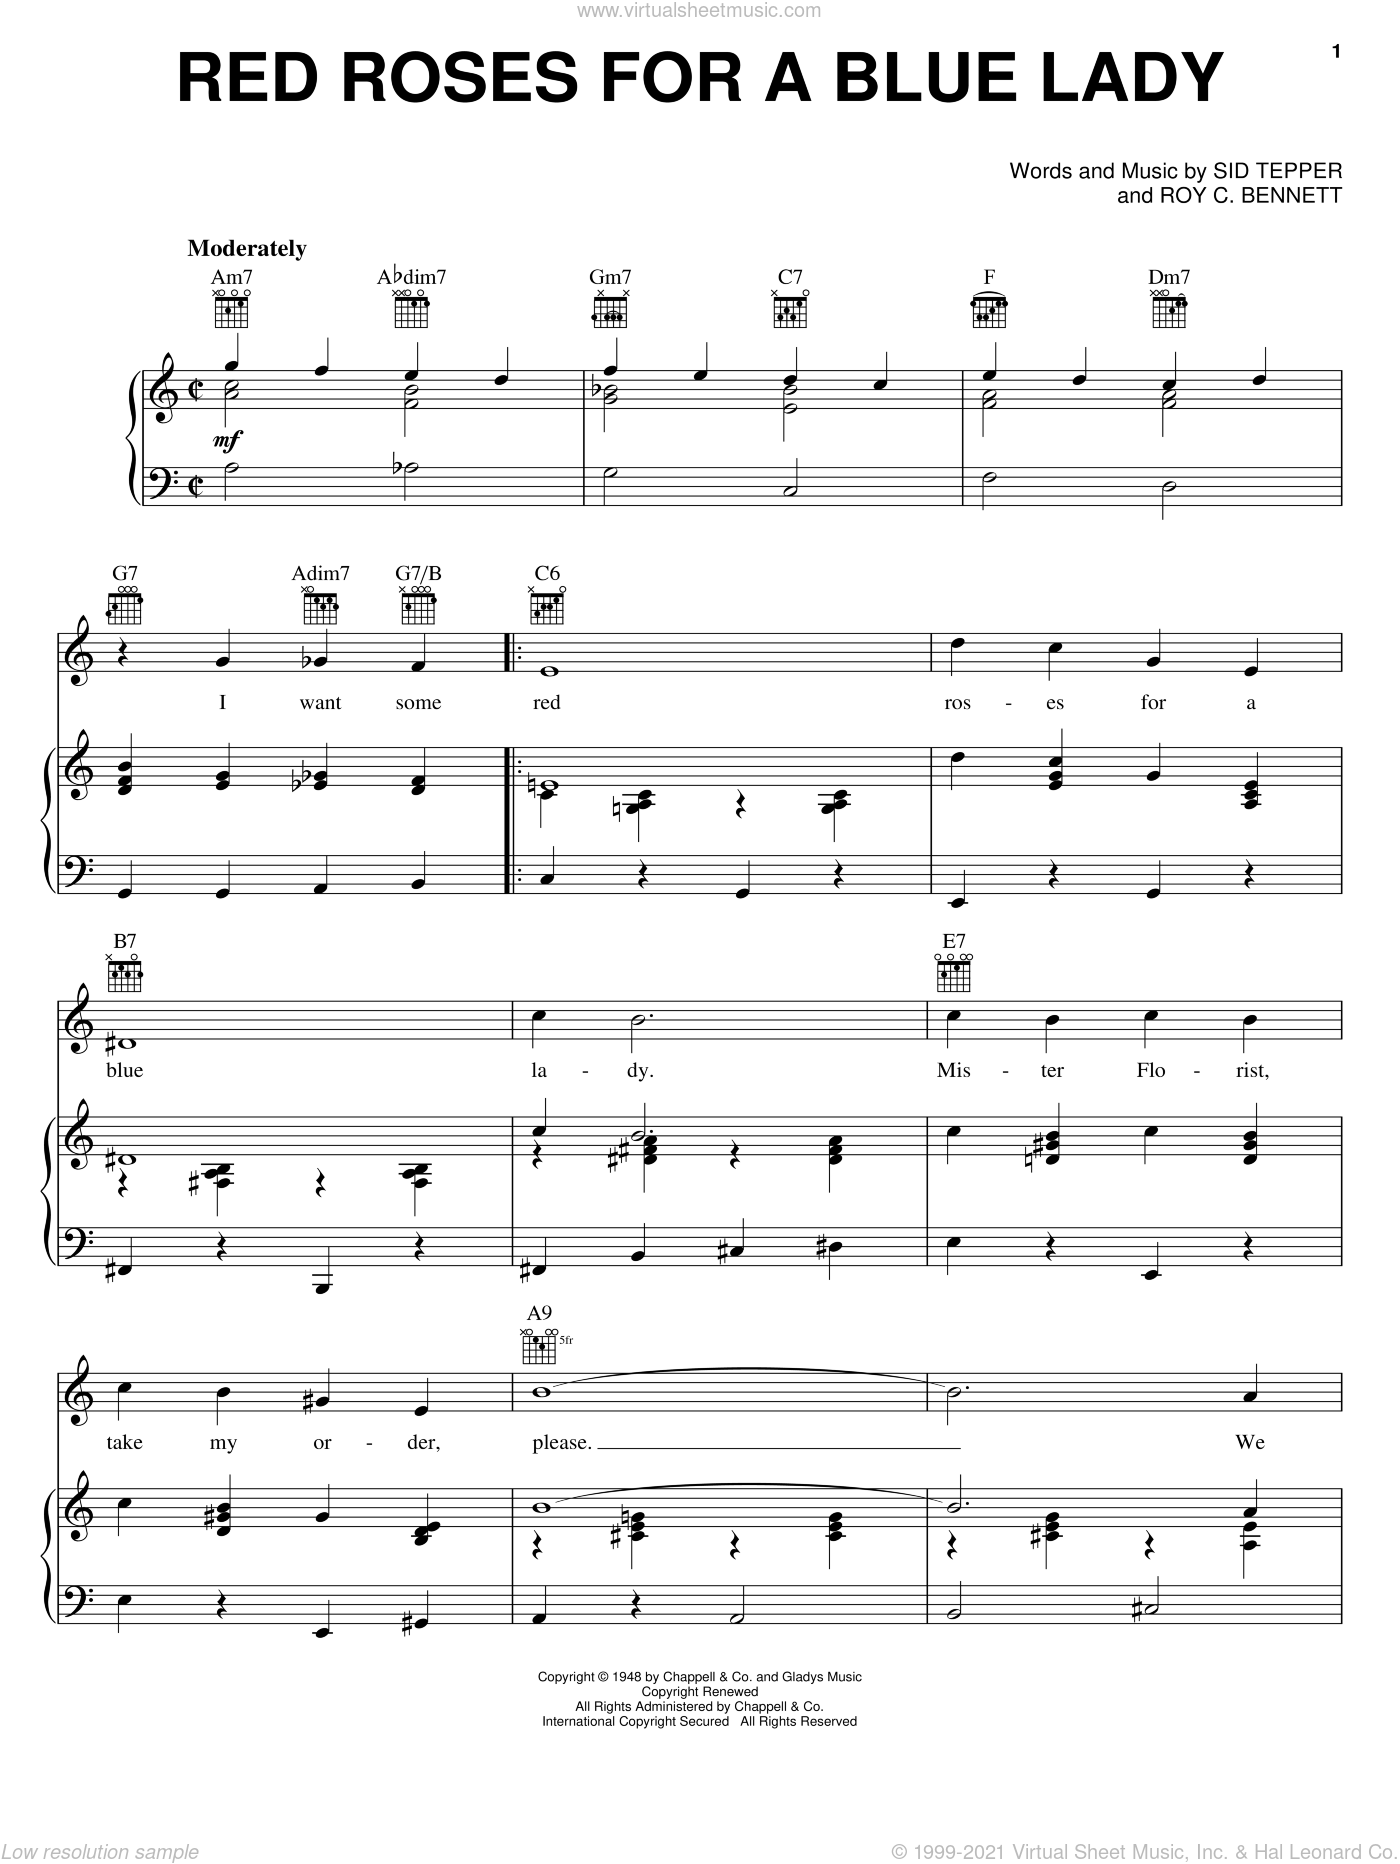 Red Roses For A Blue Lady sheet music for voice, piano or guitar by Sid Tepper